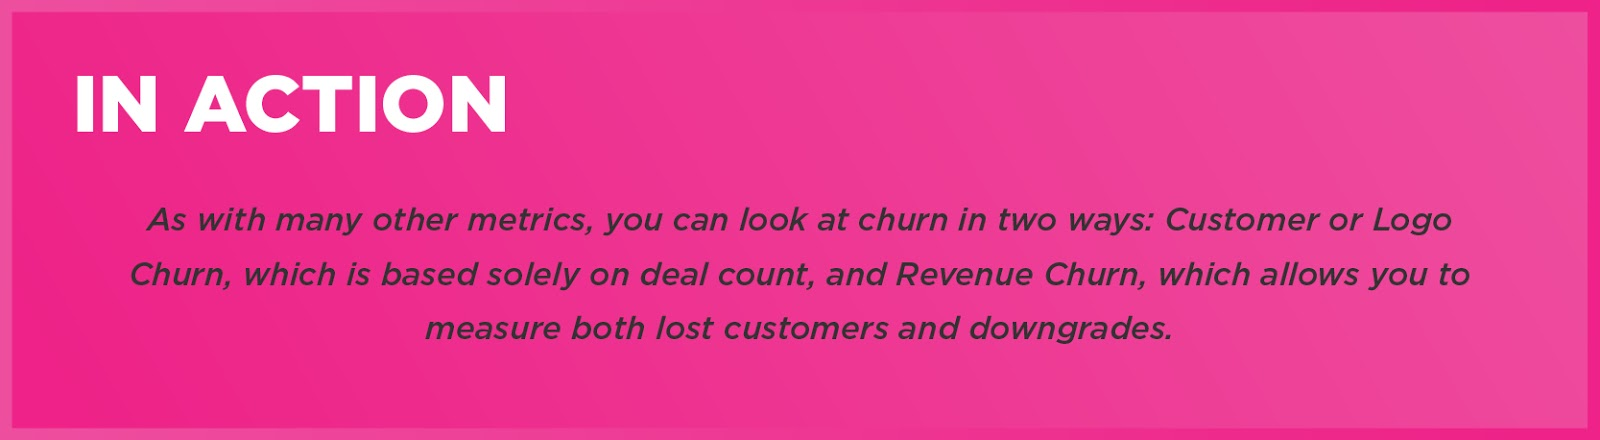 In Action: As with many other metrics, you can look at churn in two ways: Customer or Logo Churn, which is based solely on deal count, and Revenue Churn, which allows you to measure both lost customers and downgrades.